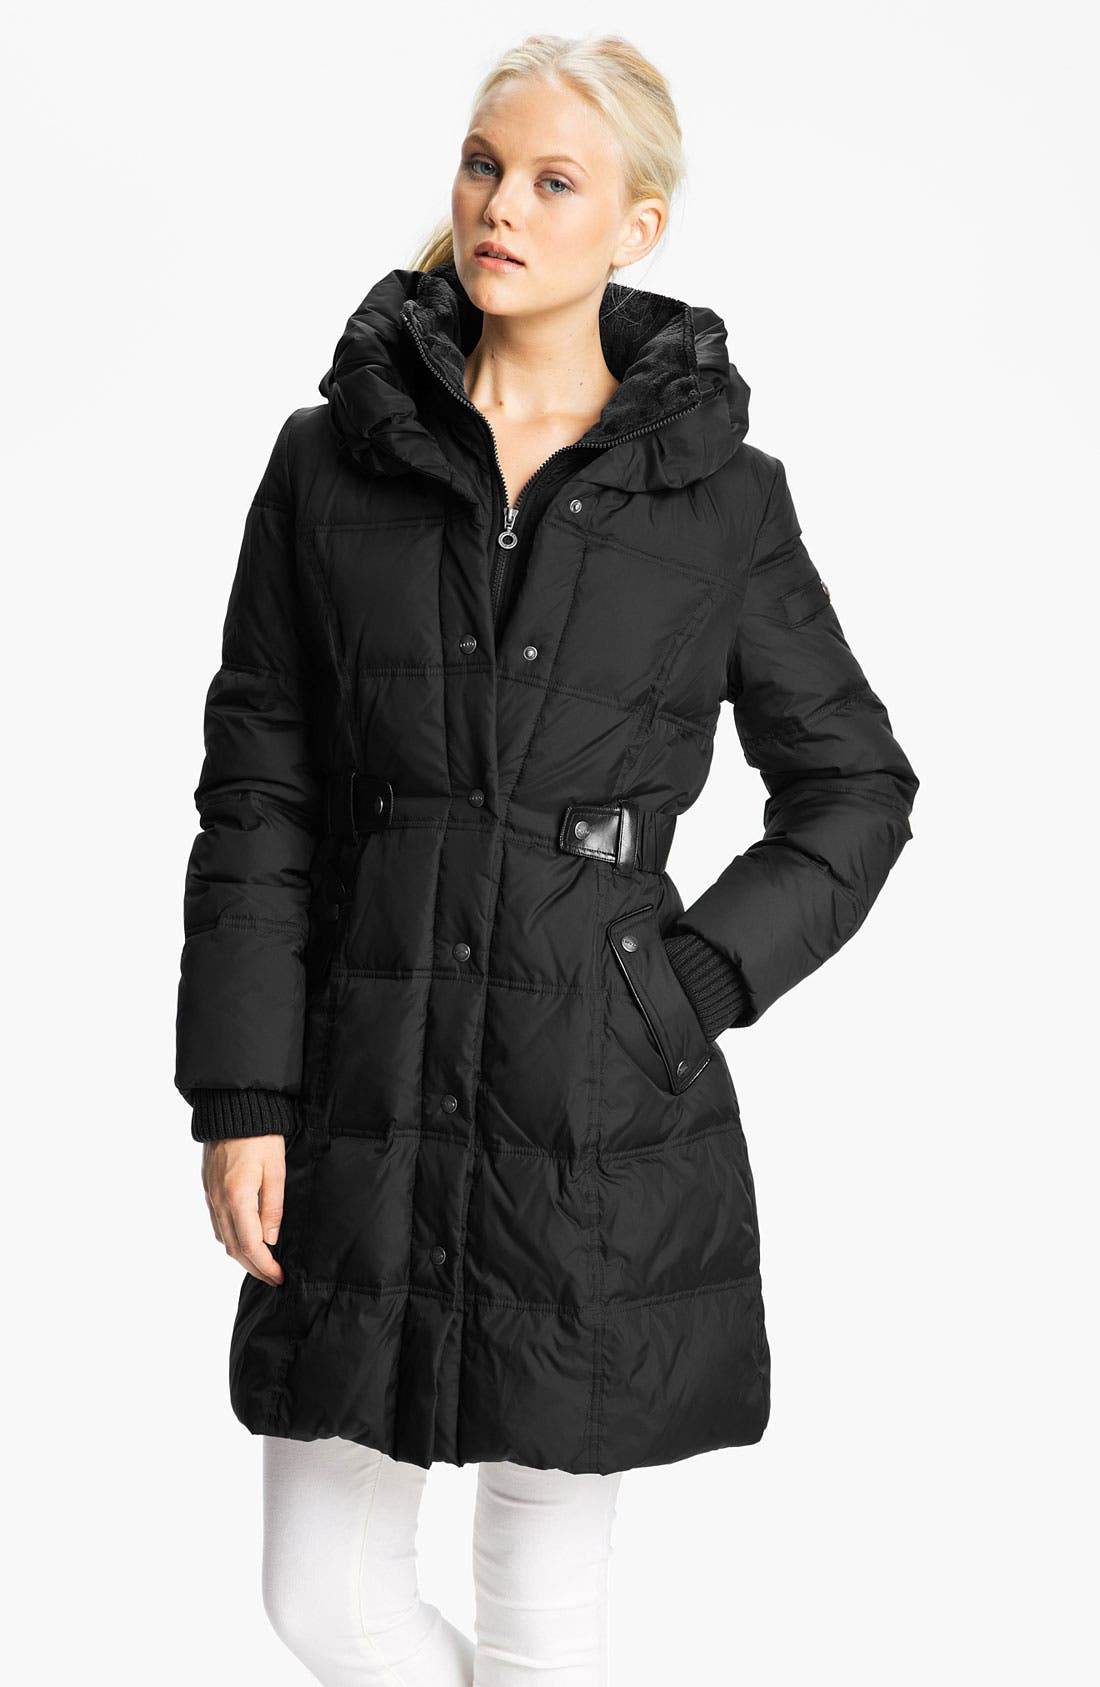 Alternate Image 1 Selected - DKNY Faux Leather Trim Water Repellent Quilted Coat (Online Exclusive)